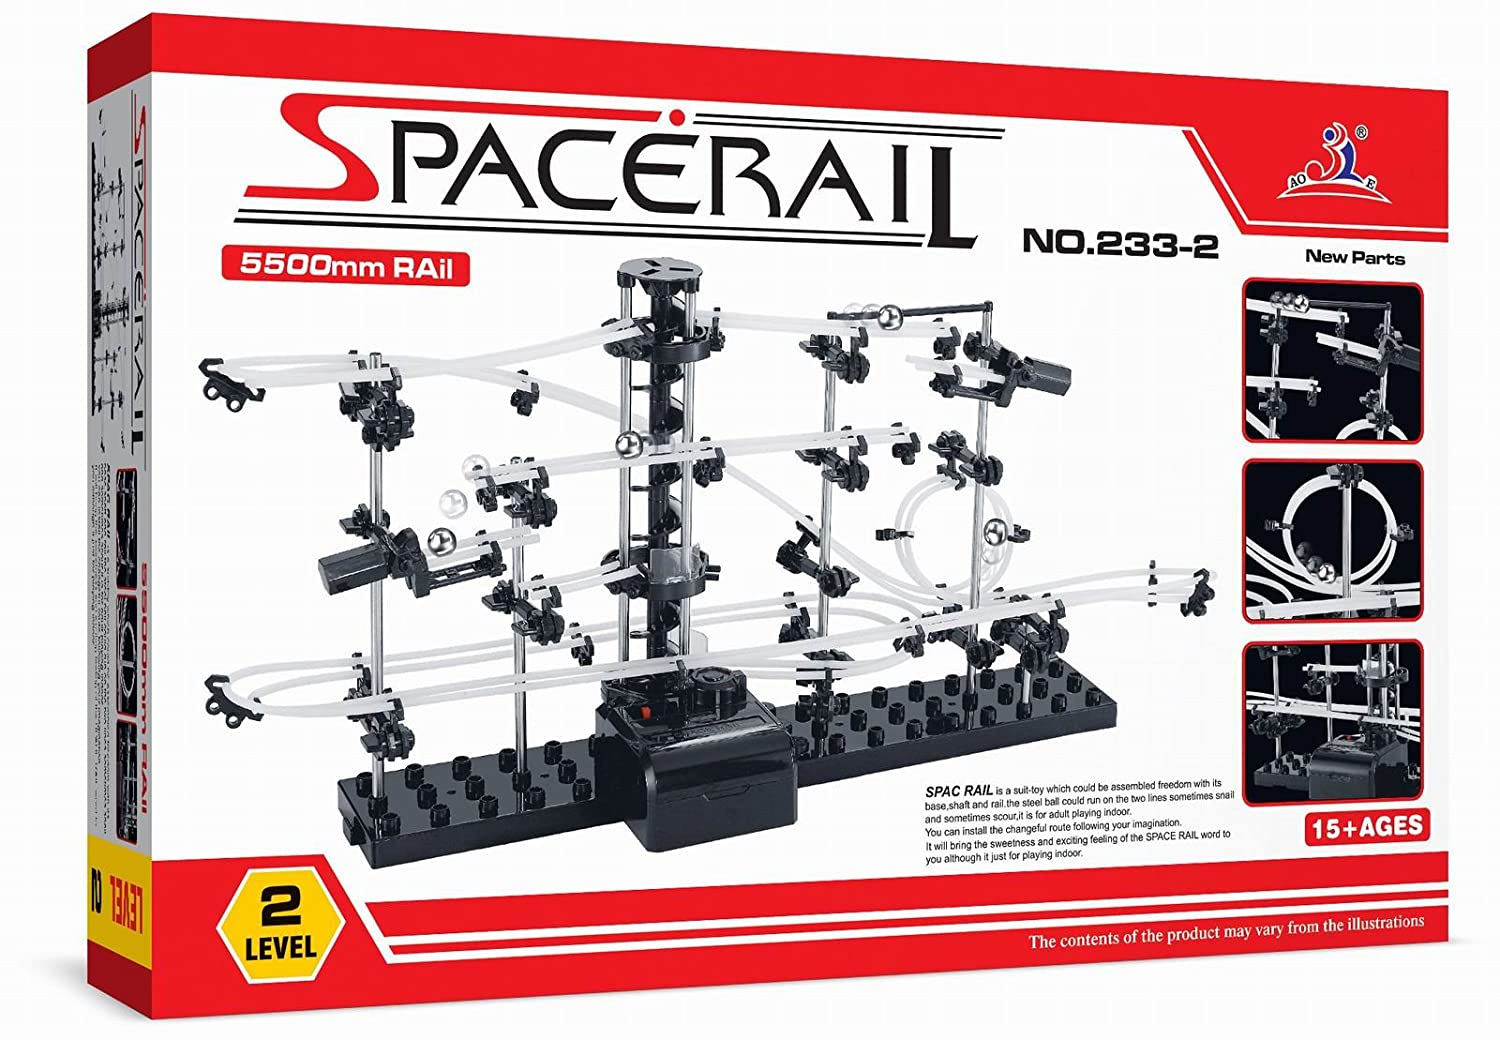 Spacerail Level 2 Game ONLY $1...